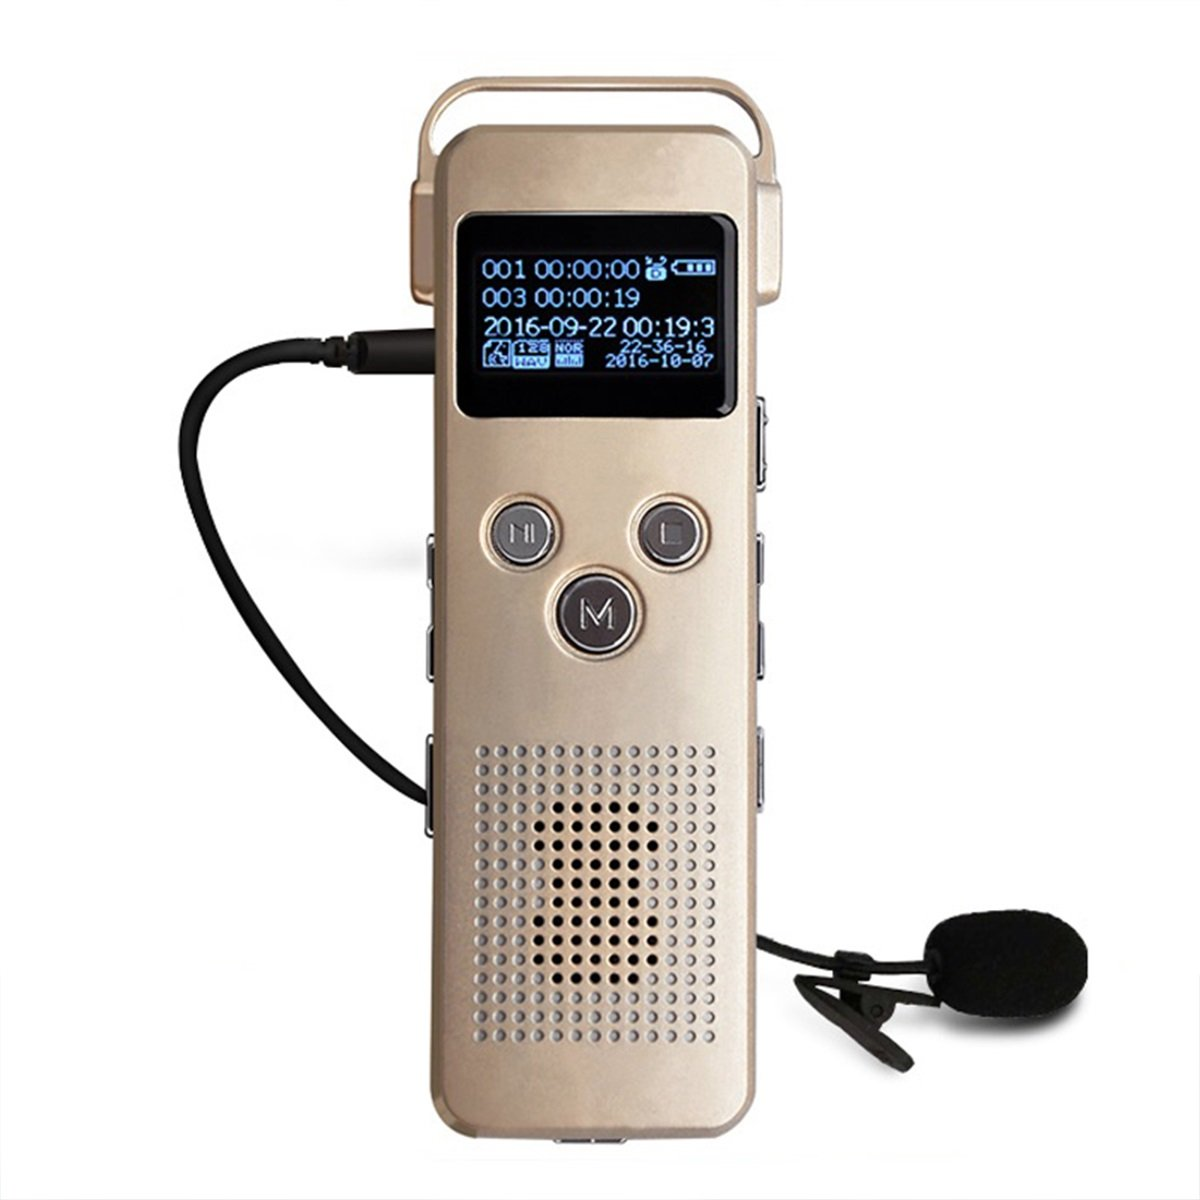 Noyazu A20 Digital Voice Recorder 16GB with MP3 Music Player Pocket Rechargeable Dictaphone (Gold)